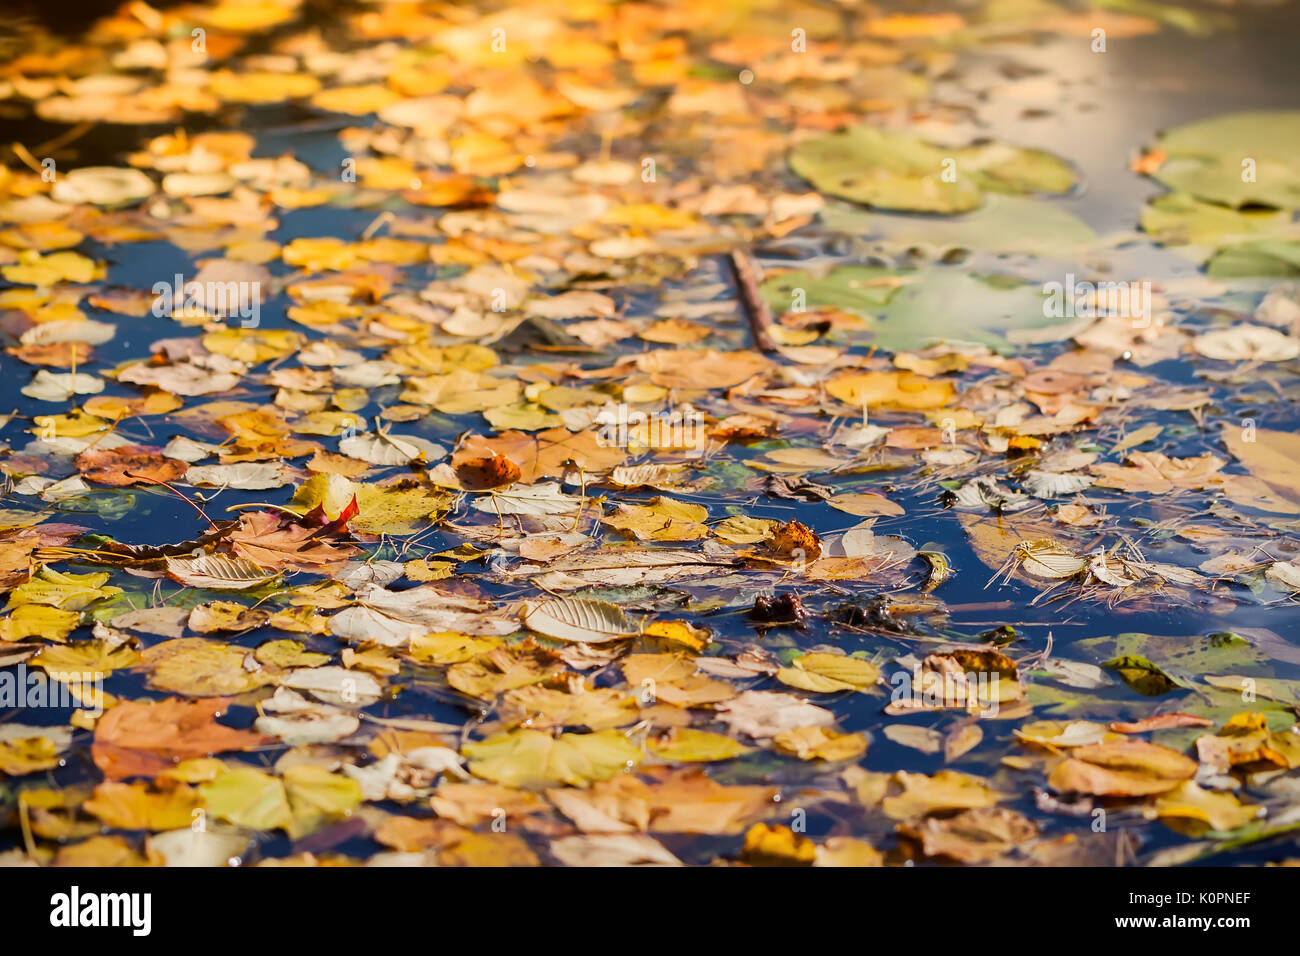 Colorful autumn leaves on cold blue water with sun reflections, golden mosaic, blurred background - Stock Image